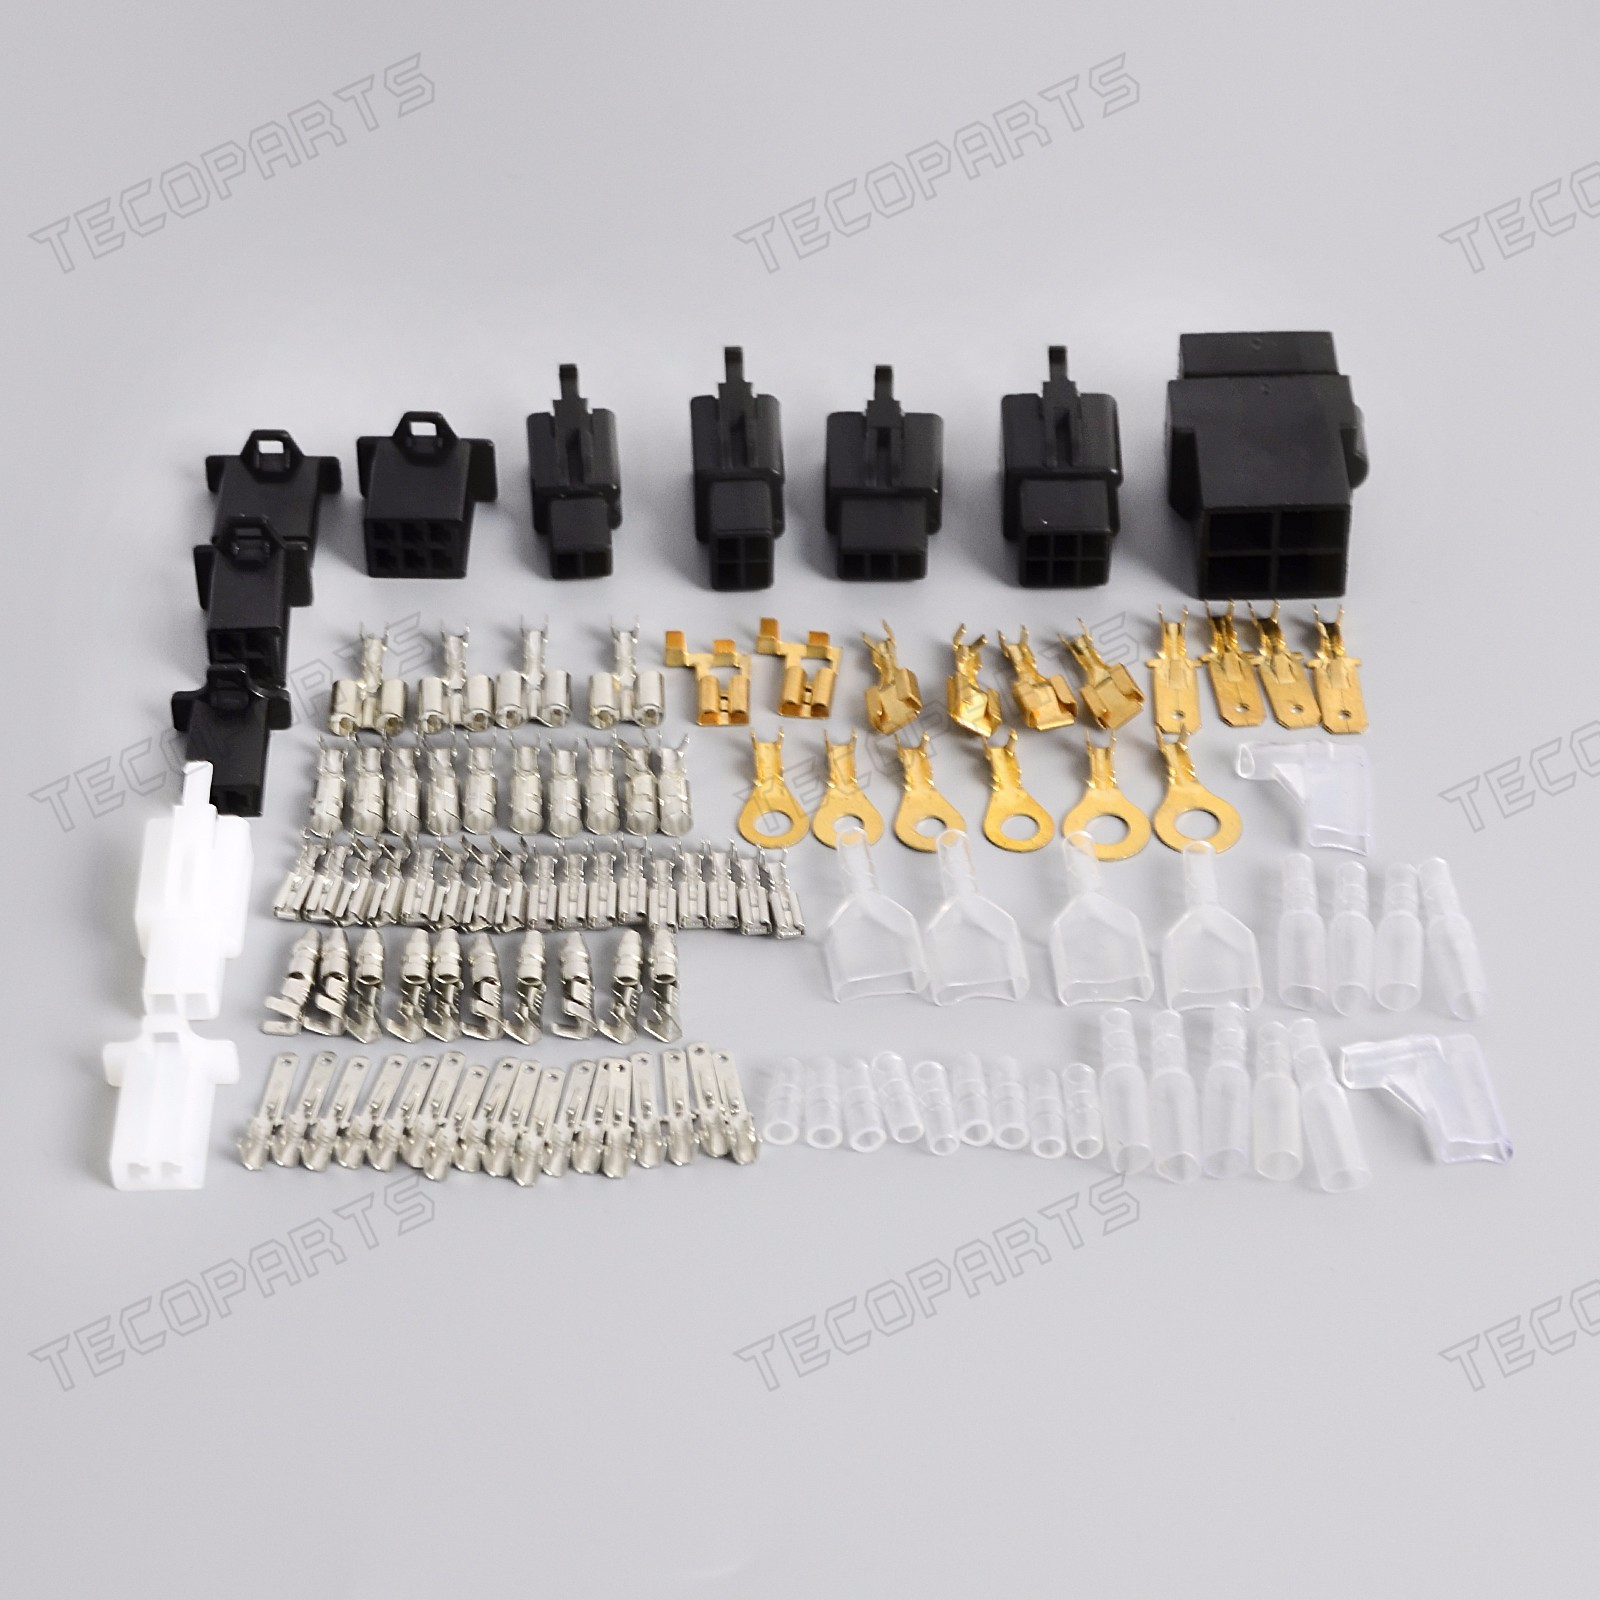 motorcycle electrical wire harness repair kit wiring loom plugmotorcycle electrical wire harness repair kit wiring loom plug bullet connector